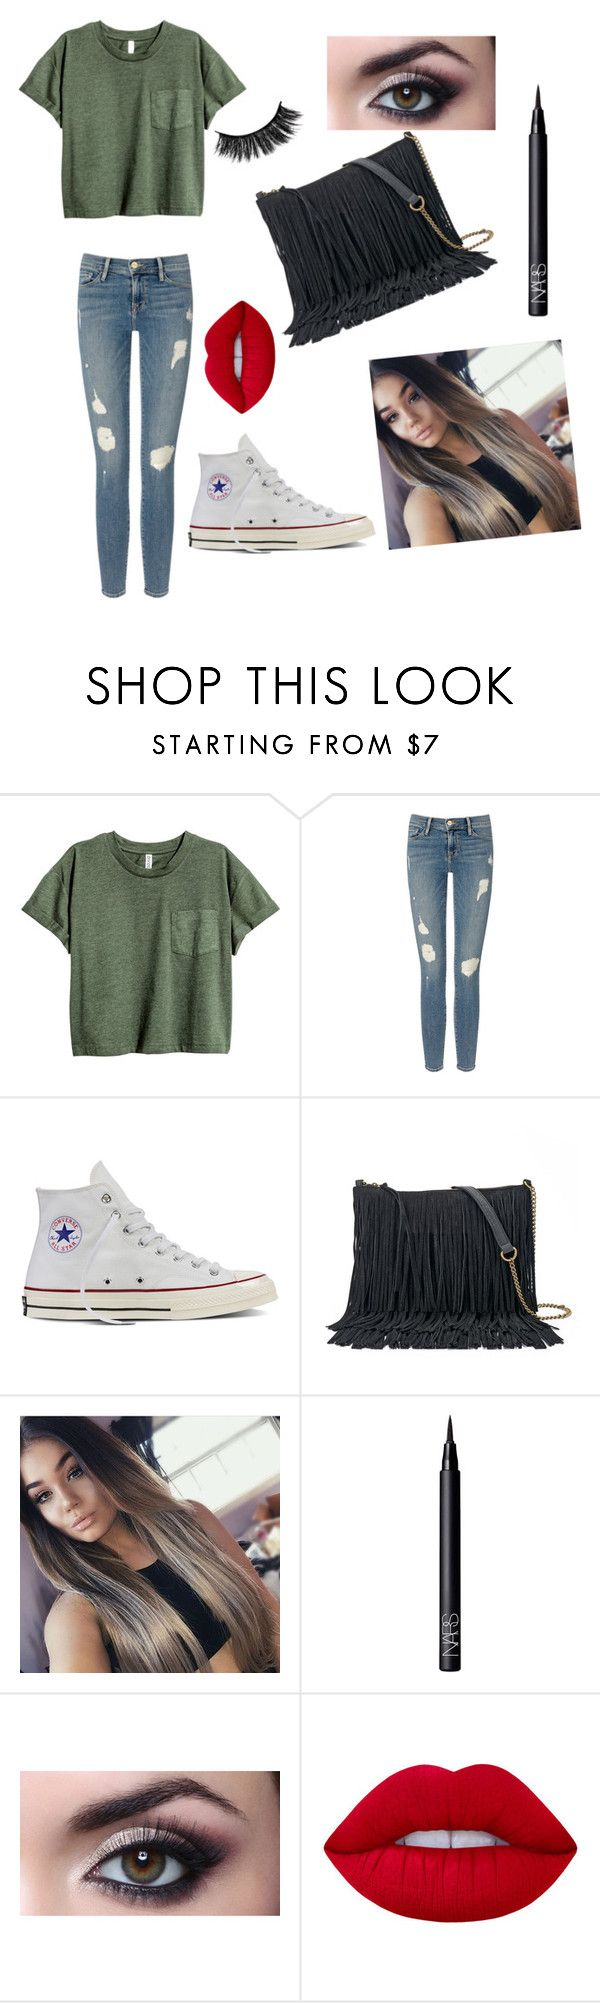 """Untitled #35"" by romi6-1 ❤ liked on Polyvore featuring Frame, Converse, SONOMA Goods for Life, NARS Cosmetics and Lime Crime"